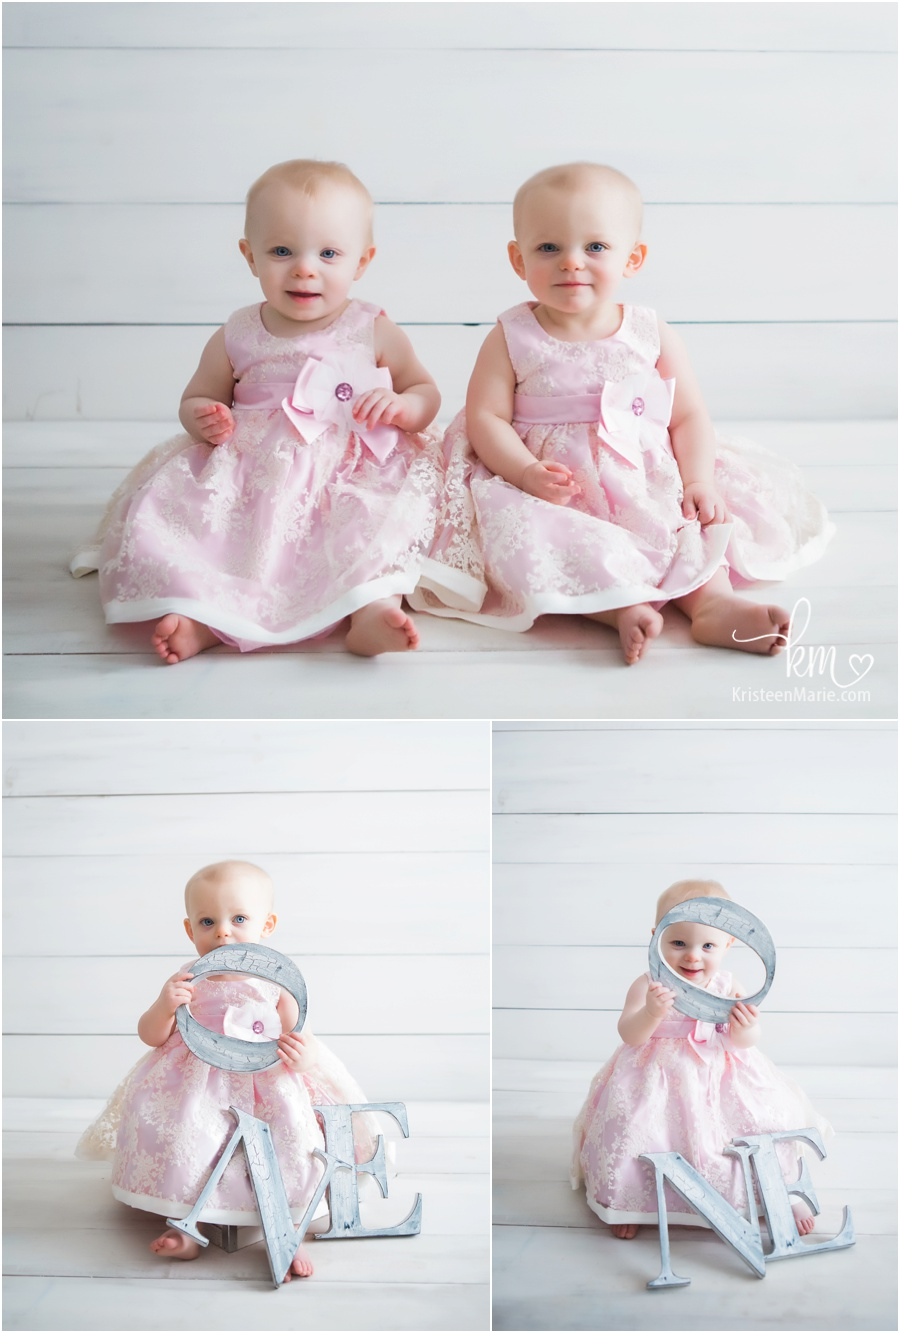 Twins | KristeenMarie Photography